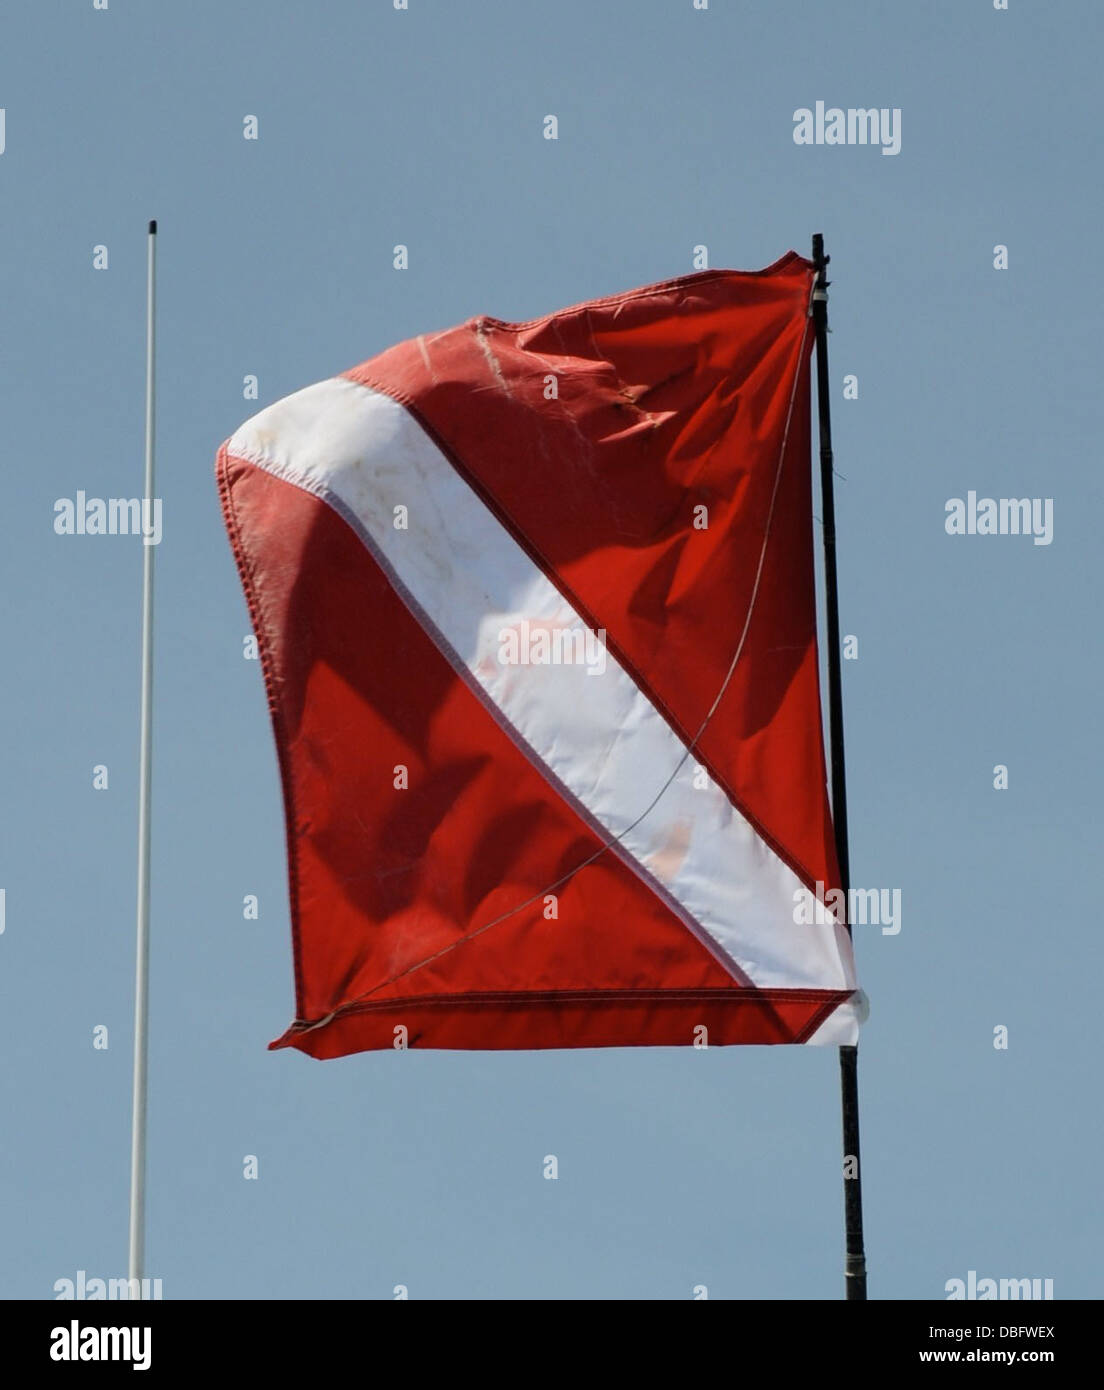 A dive flag is flown to warn incoming boaters of a diver in the water during lobster mini season July 25, 2013. - Stock Image